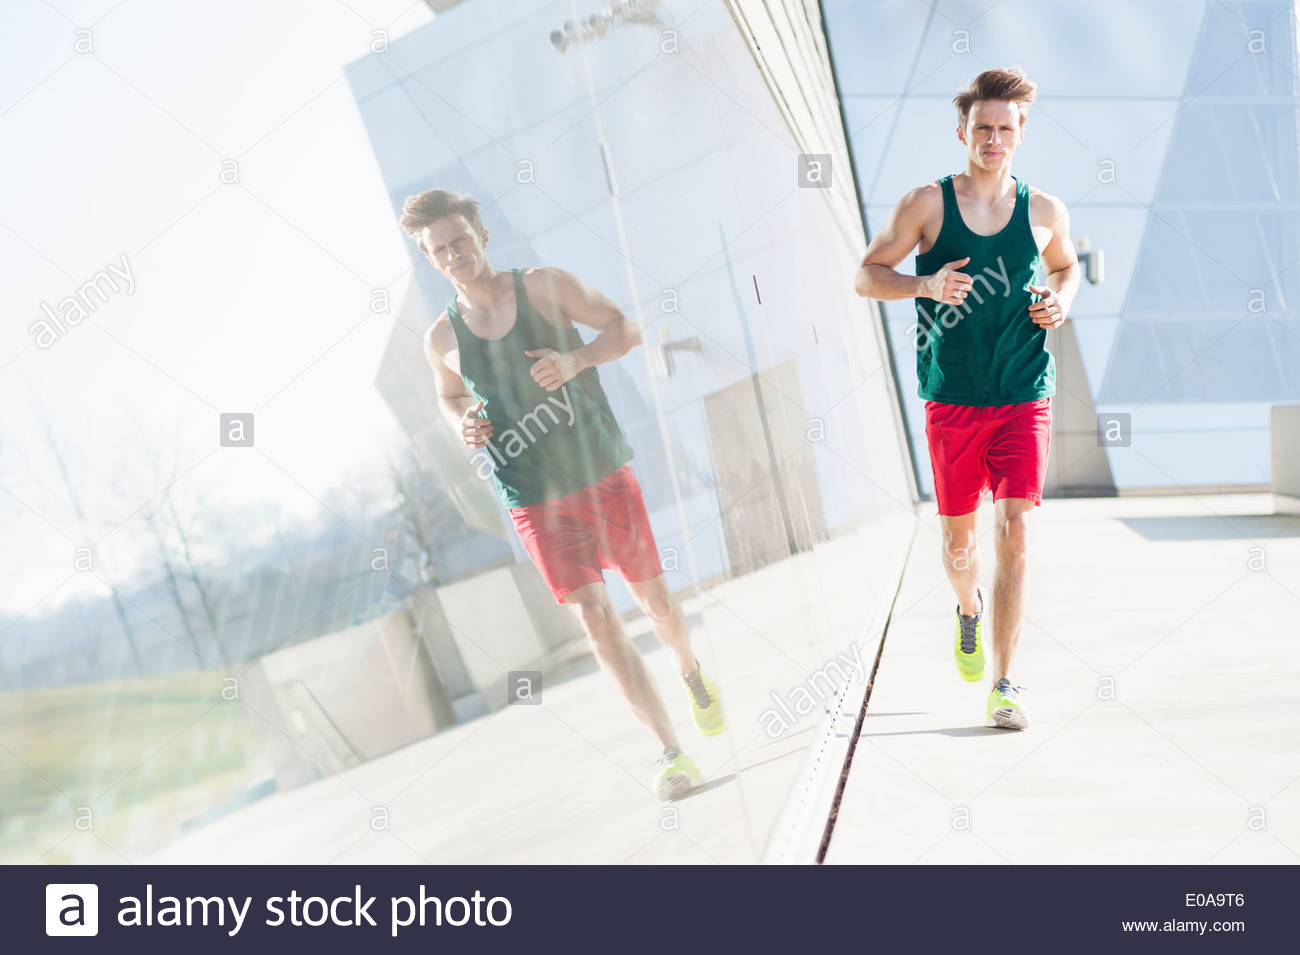 Mid adult man running past reflective window - Stock Image